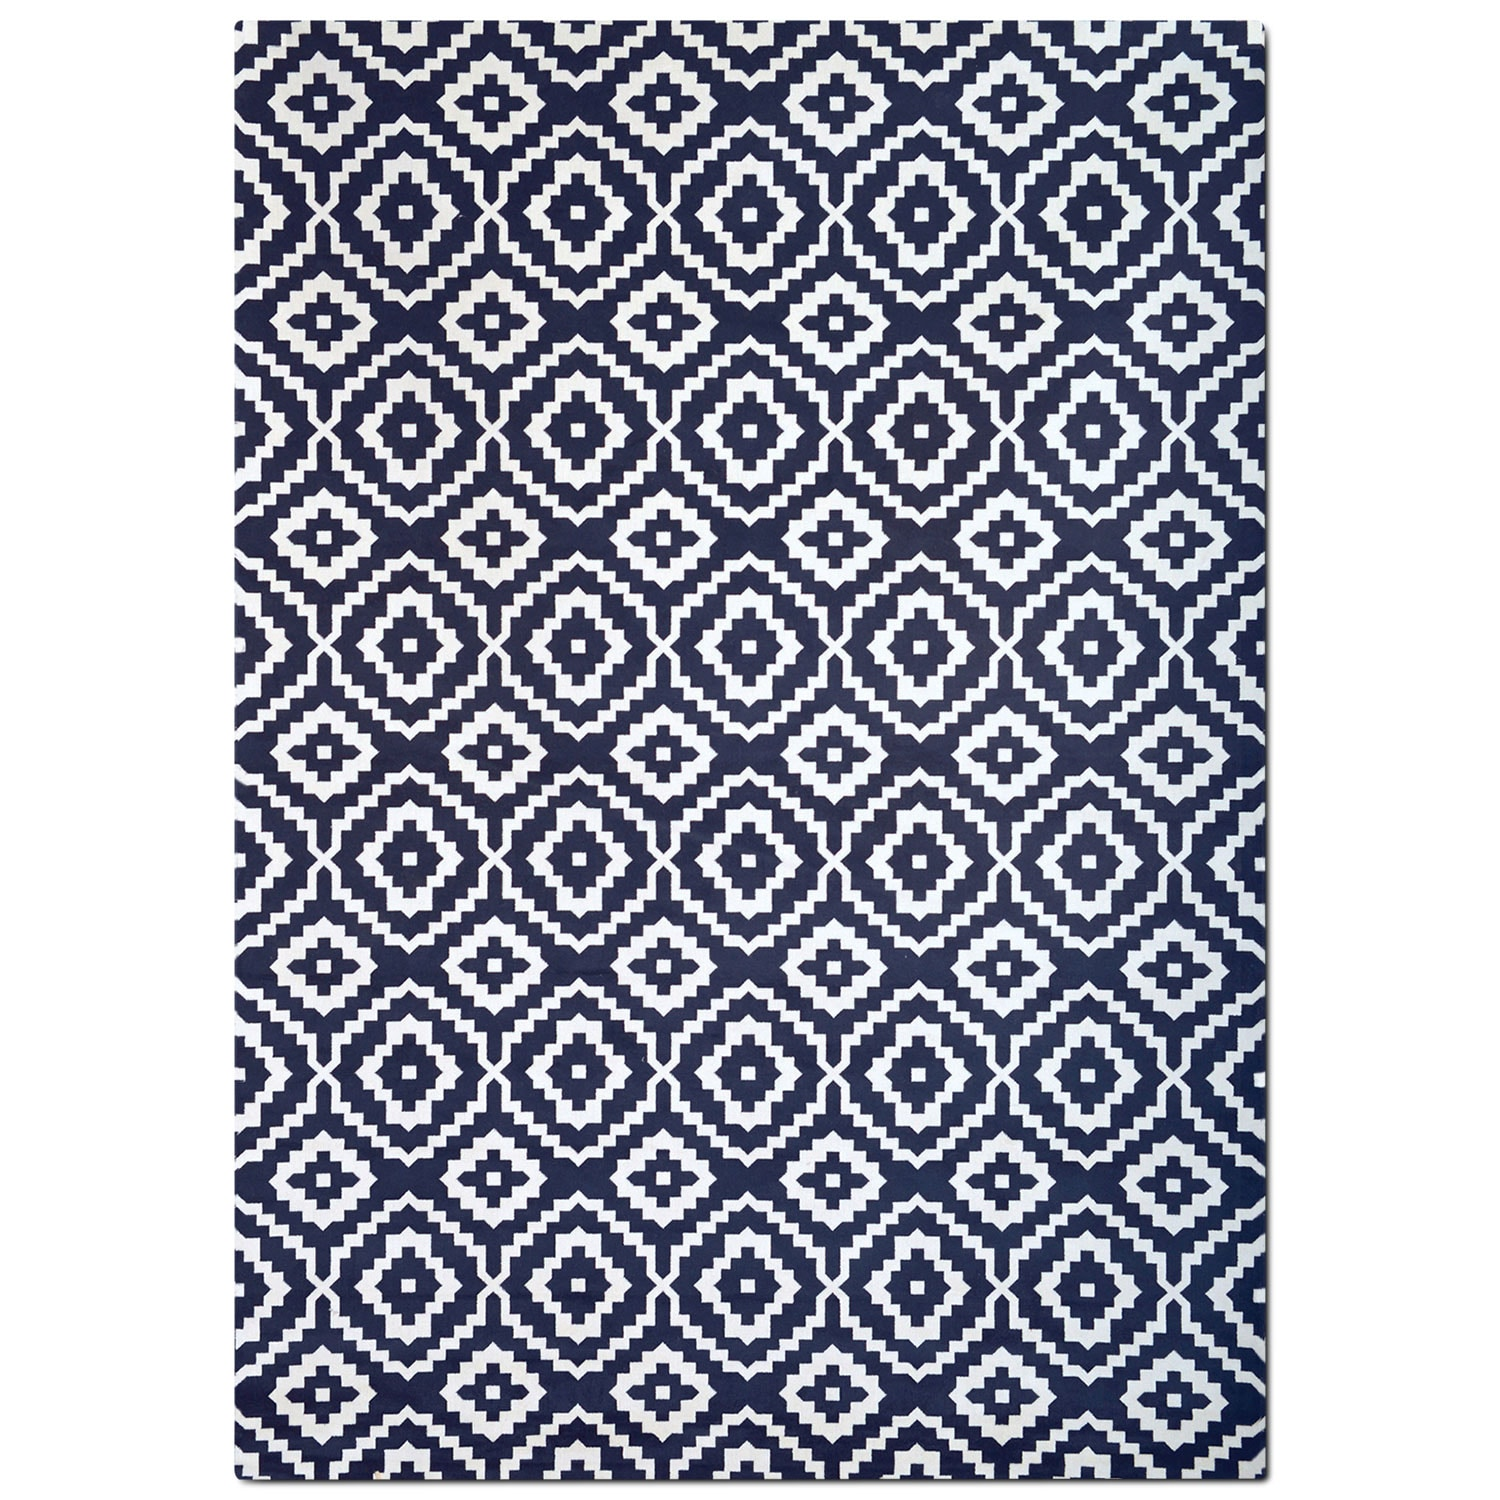 Rugs - Sonoma 8' x 10' Area Rug - Navy and White